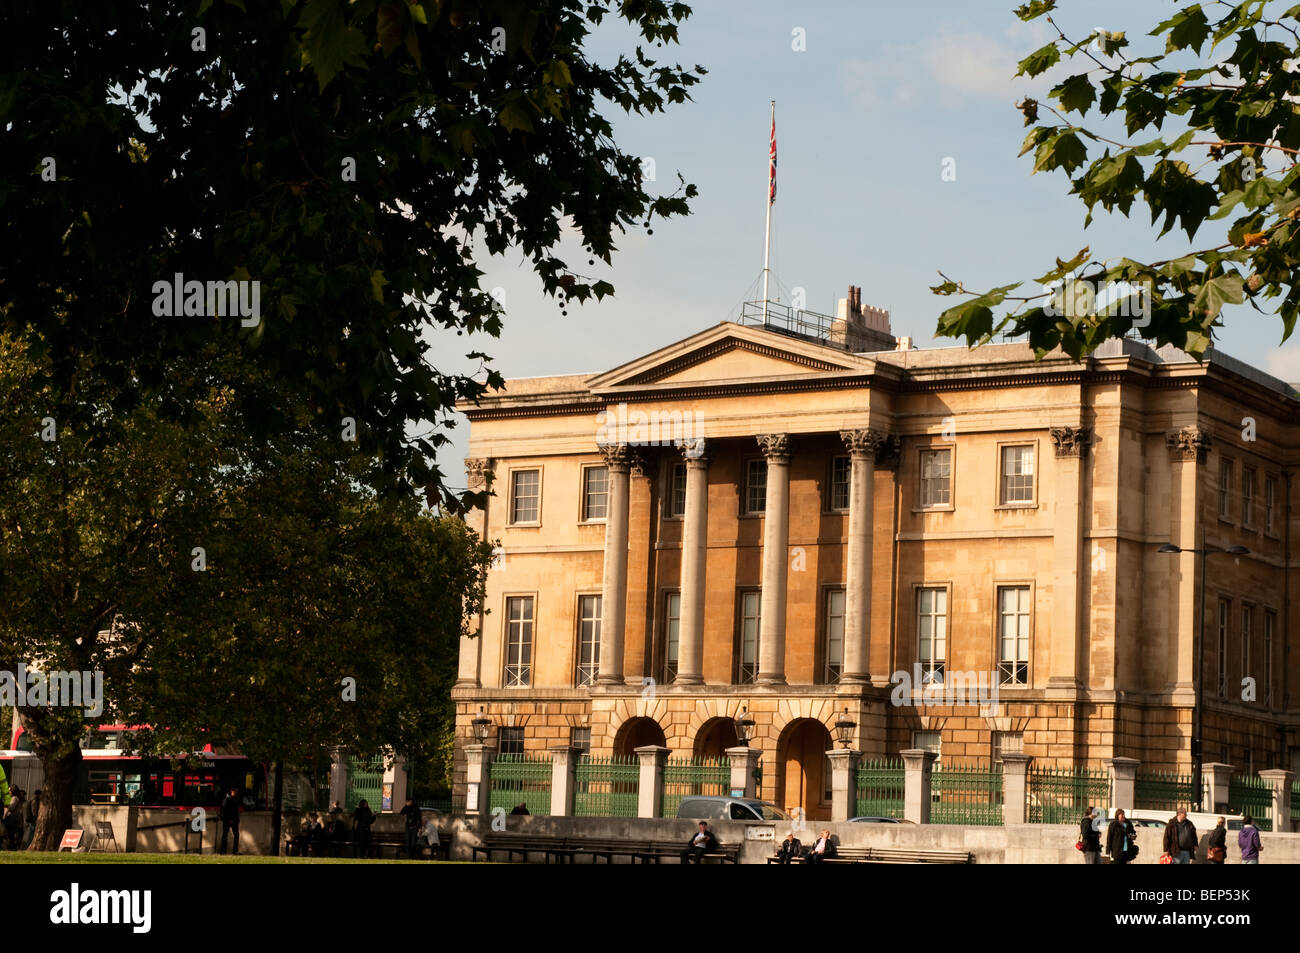 Apsley House, Wellington Museum, Westminster, London SW1 - Stock Image